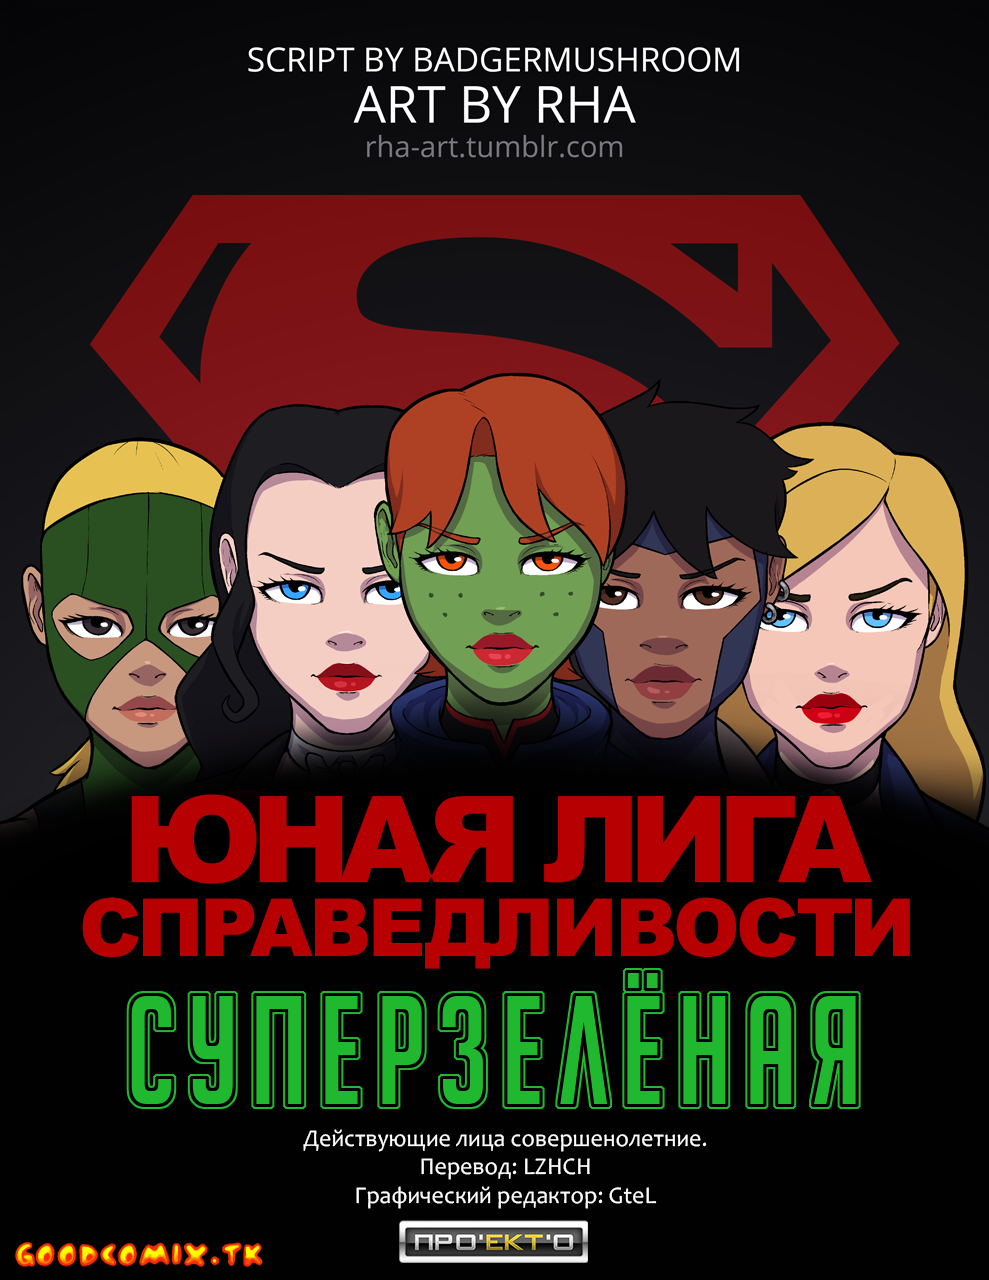 Goodcomix.tk Young Justice - [RHA] - Supergreen